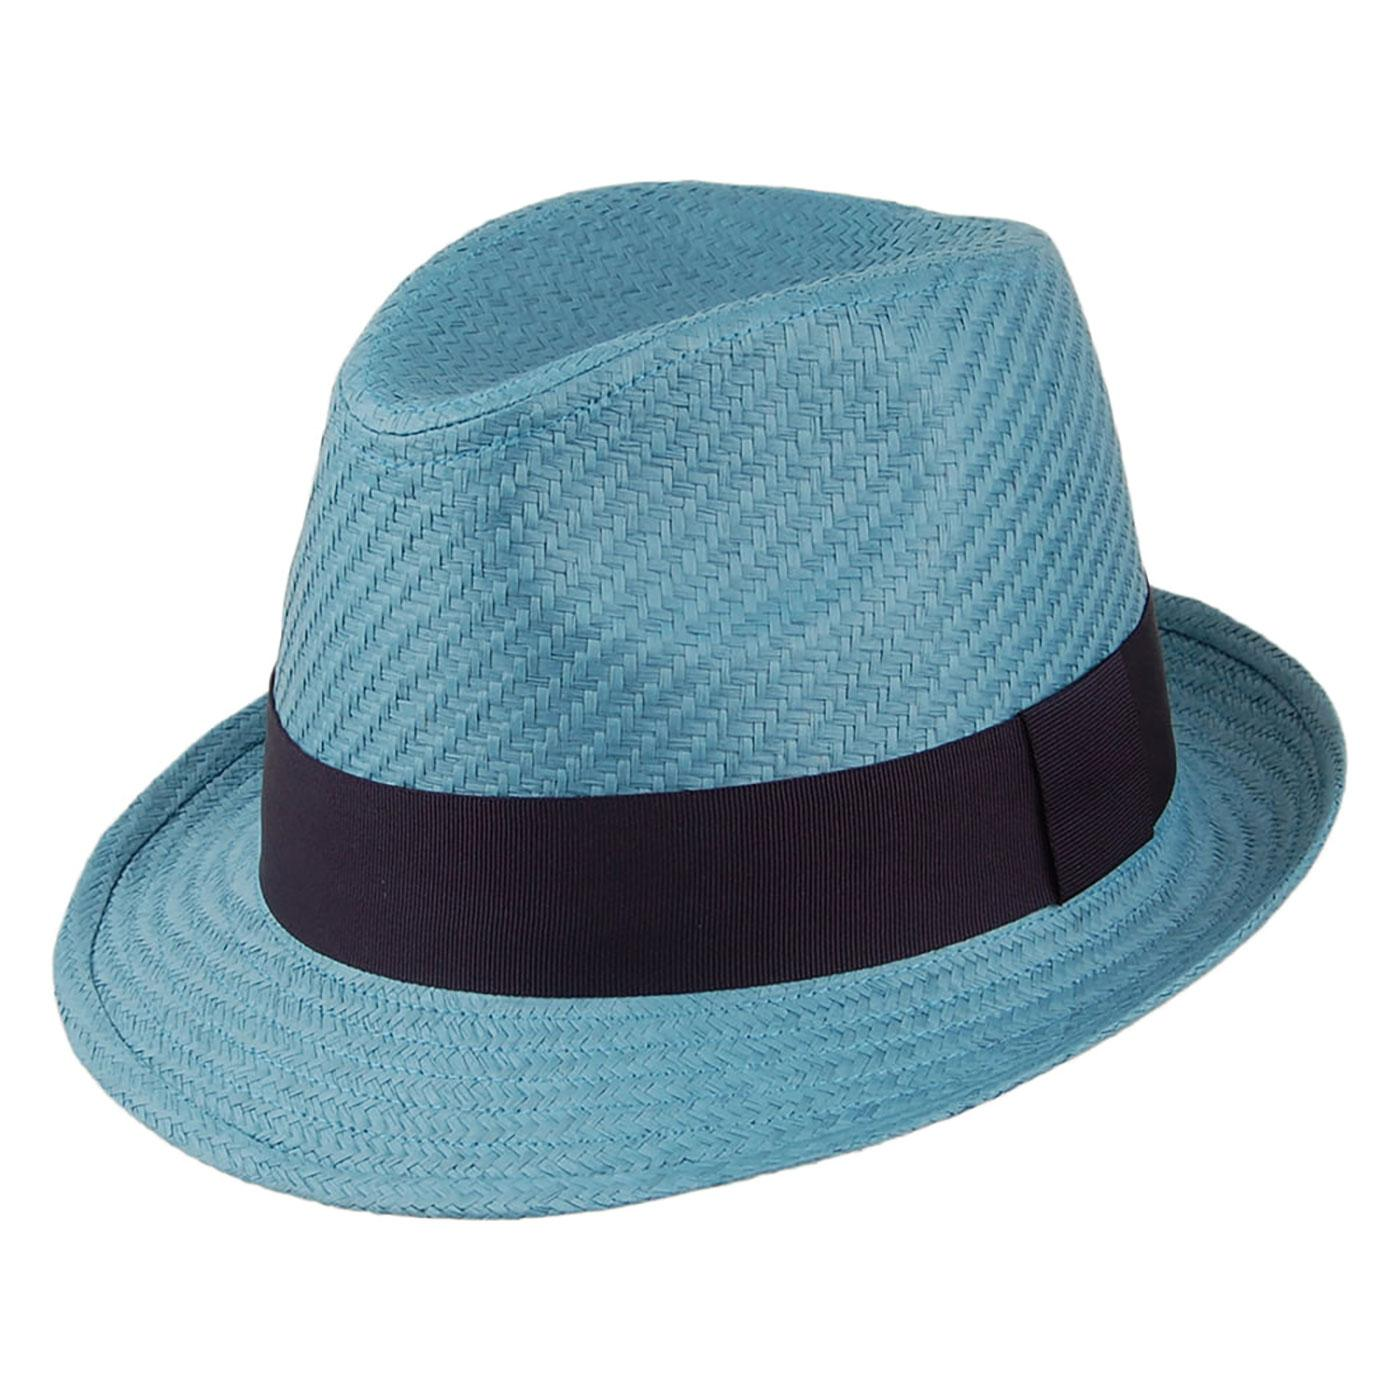 FAILSWORTH Men's Bold Retro Straw Trilby Hat BLUE